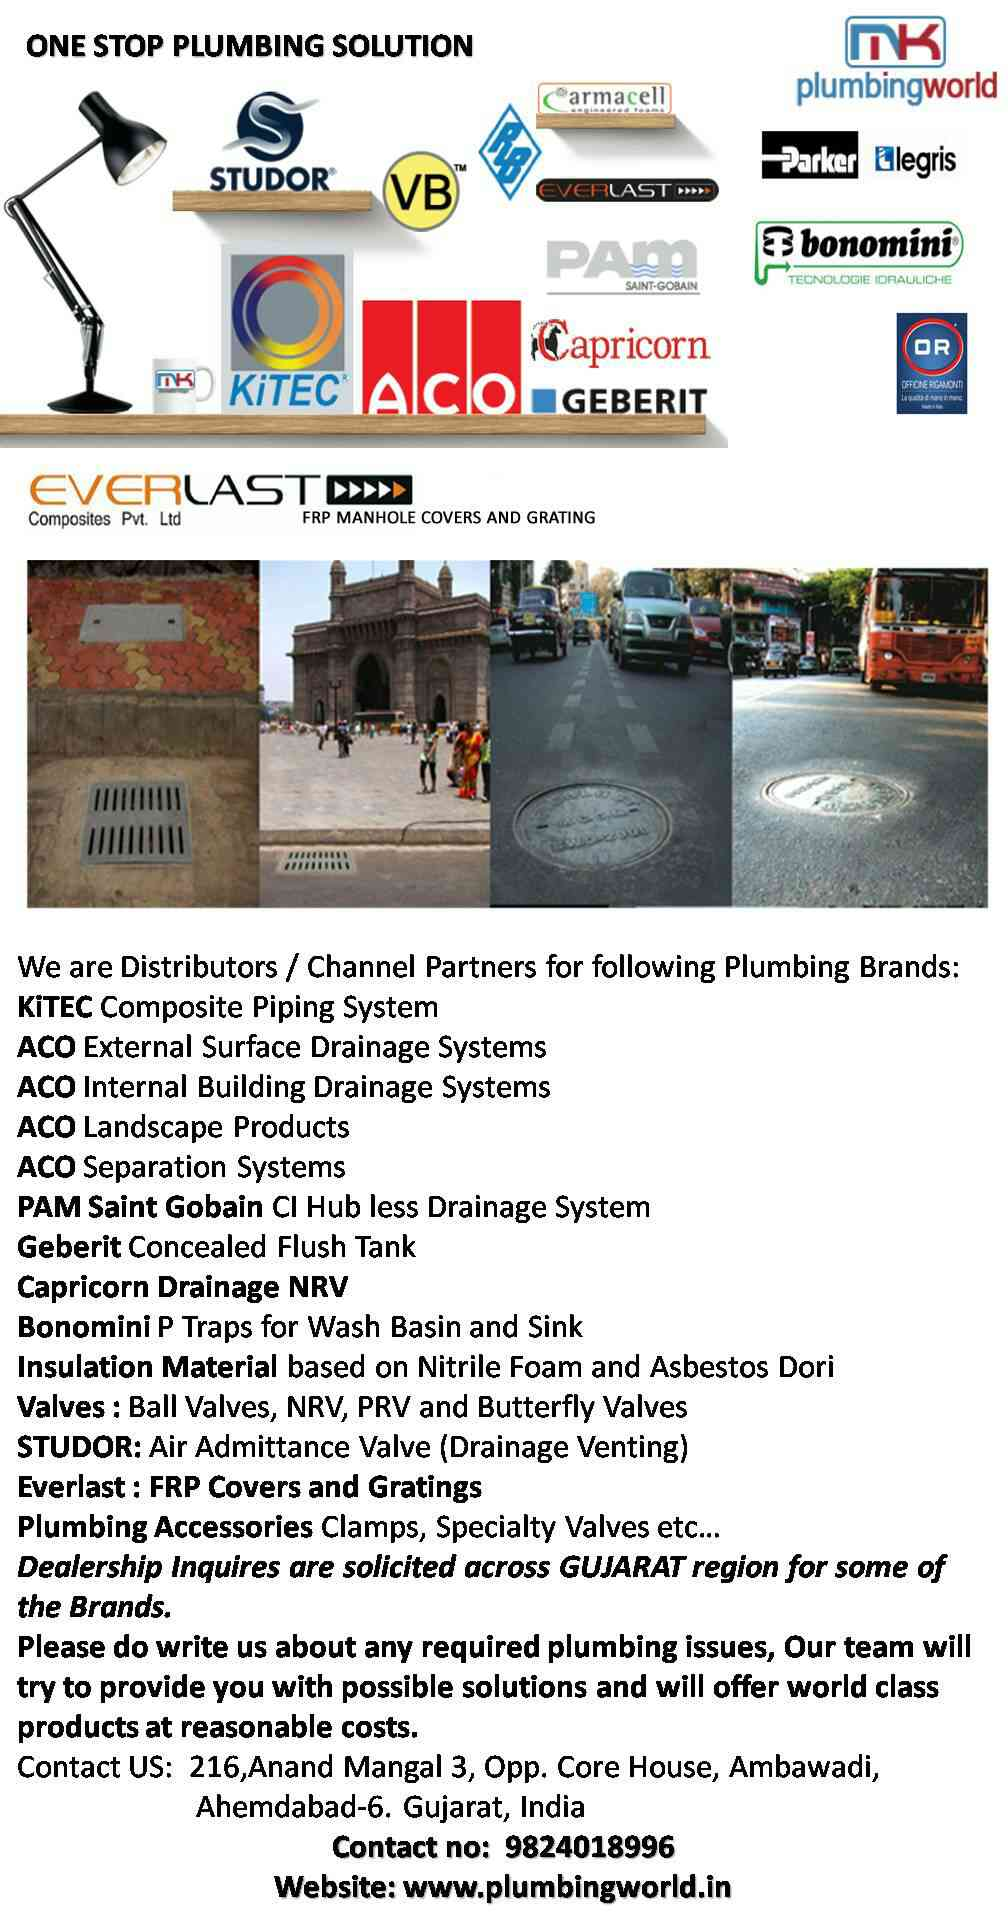 FRP Access Covers Everlast